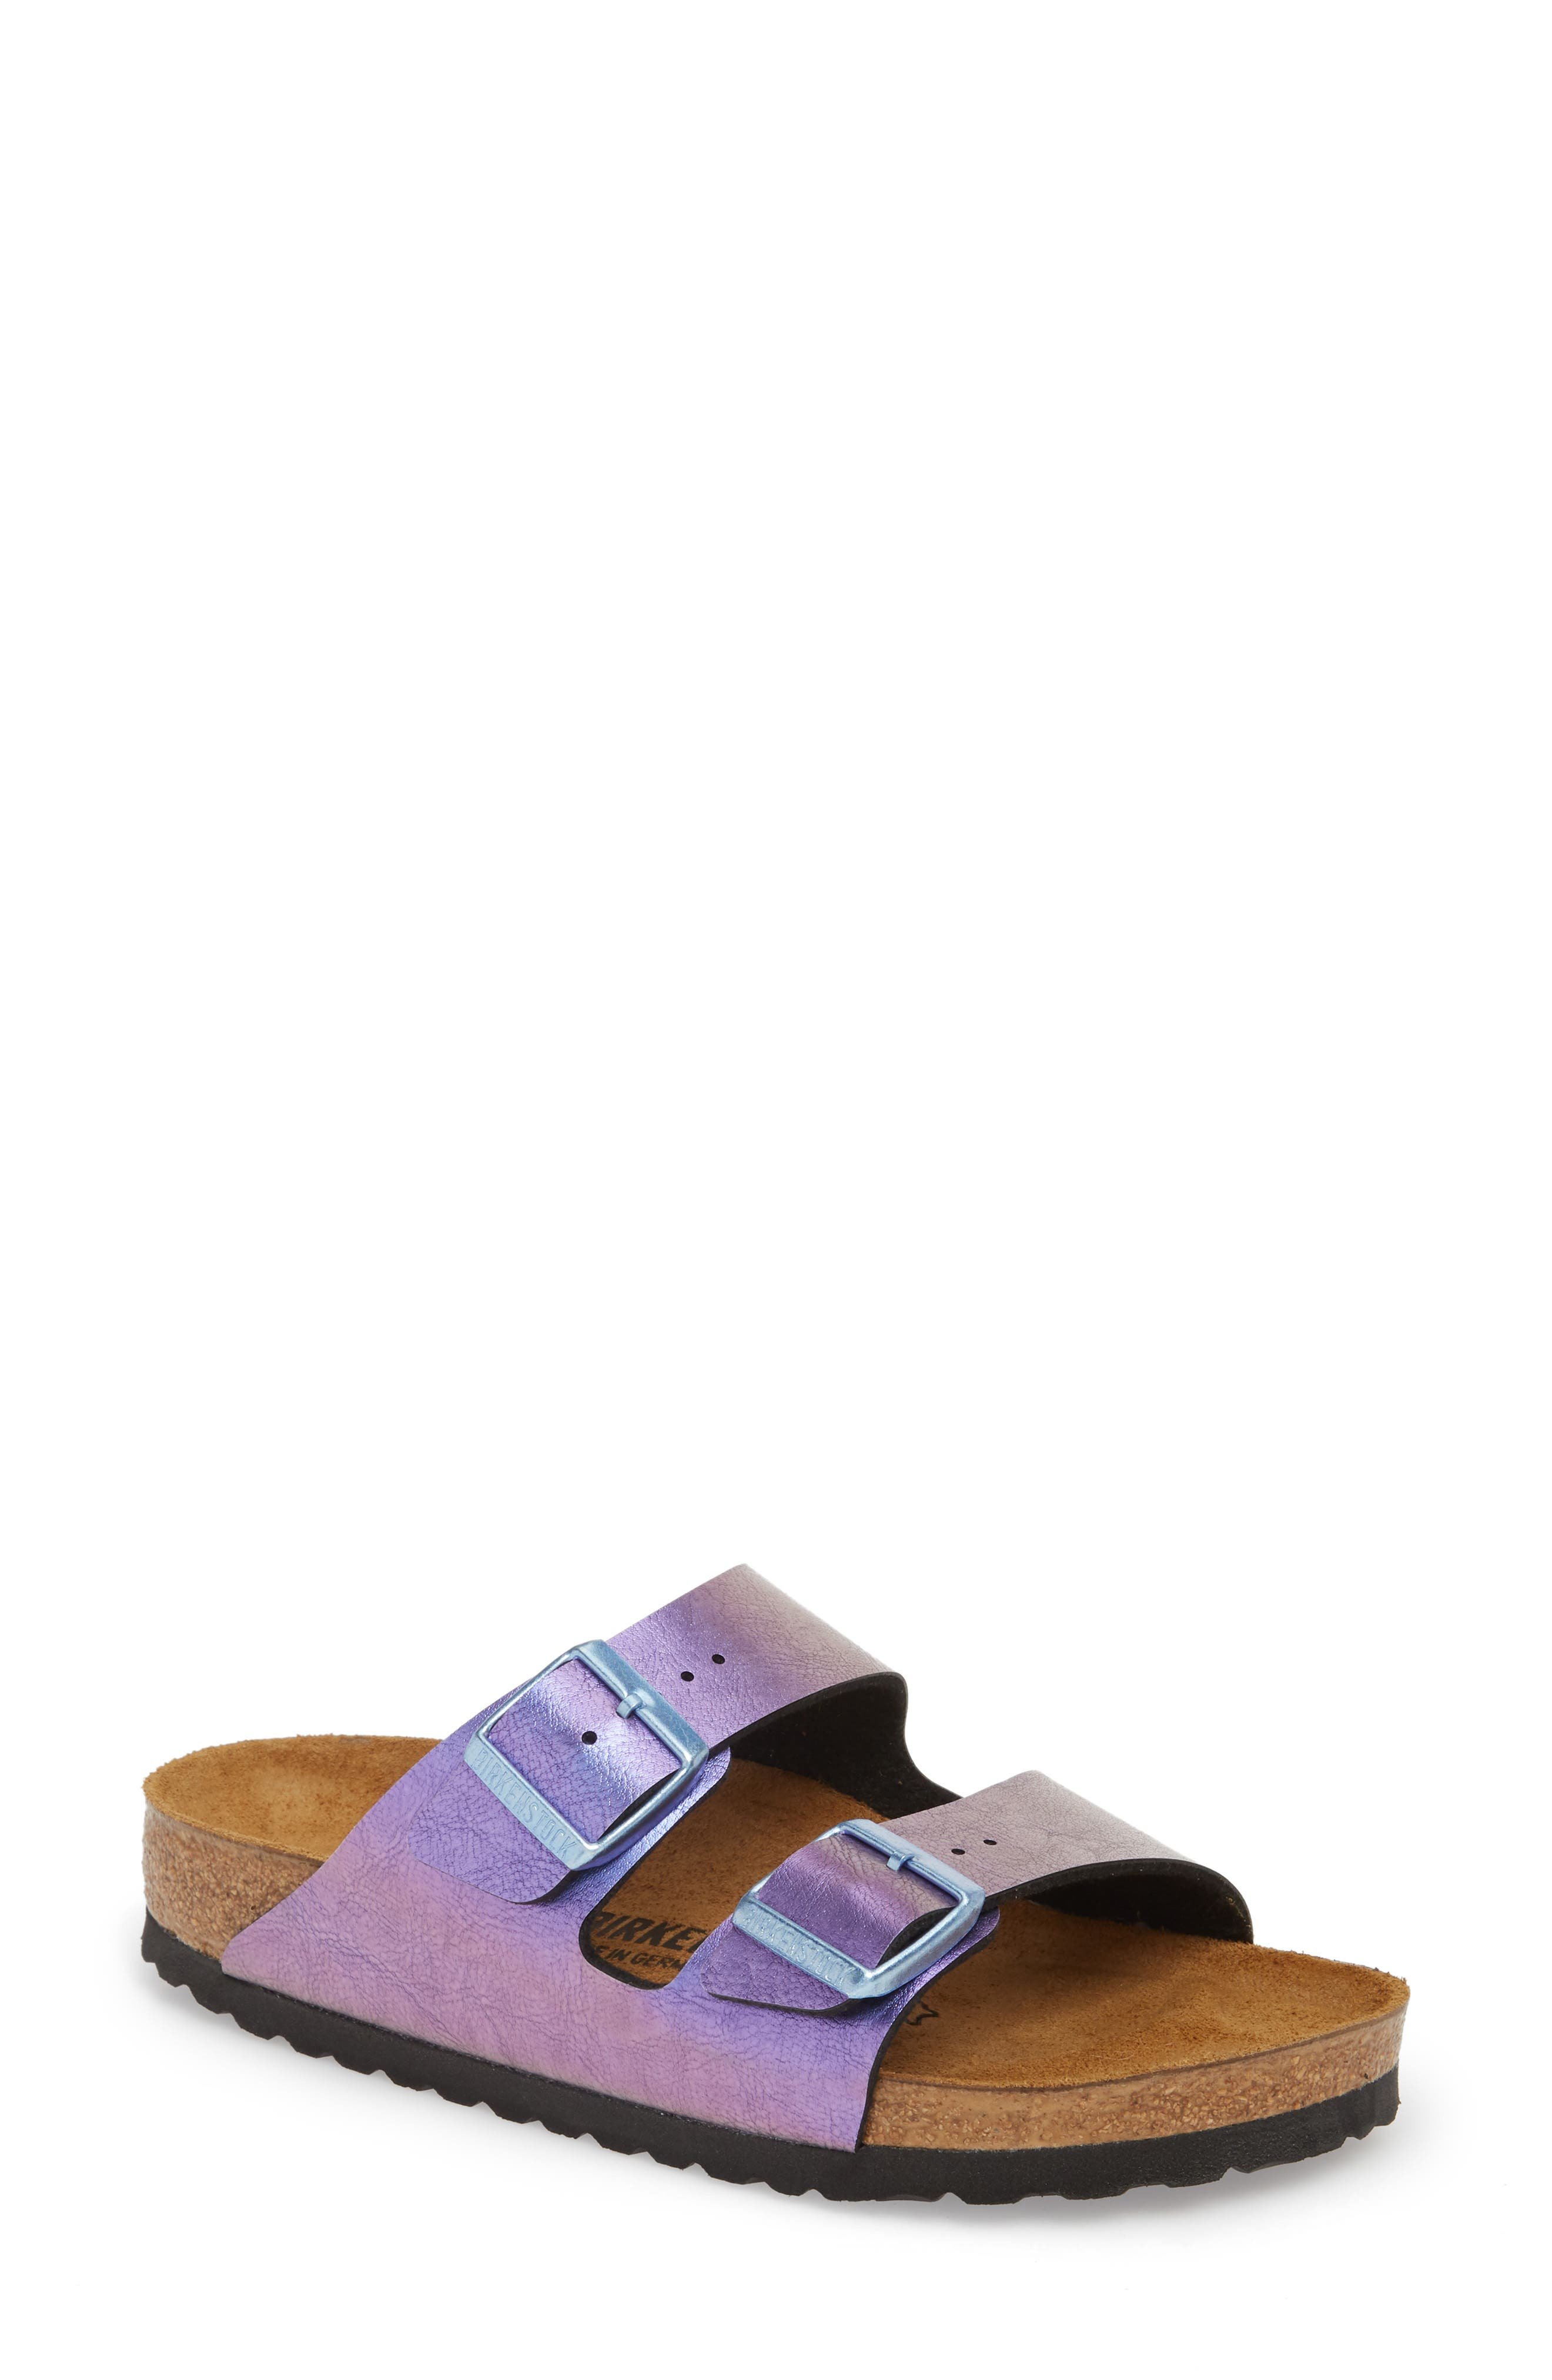 Arizona Graceful Birko-Flor<sup>™</sup> Sandal,                         Main,                         color, VIOLET